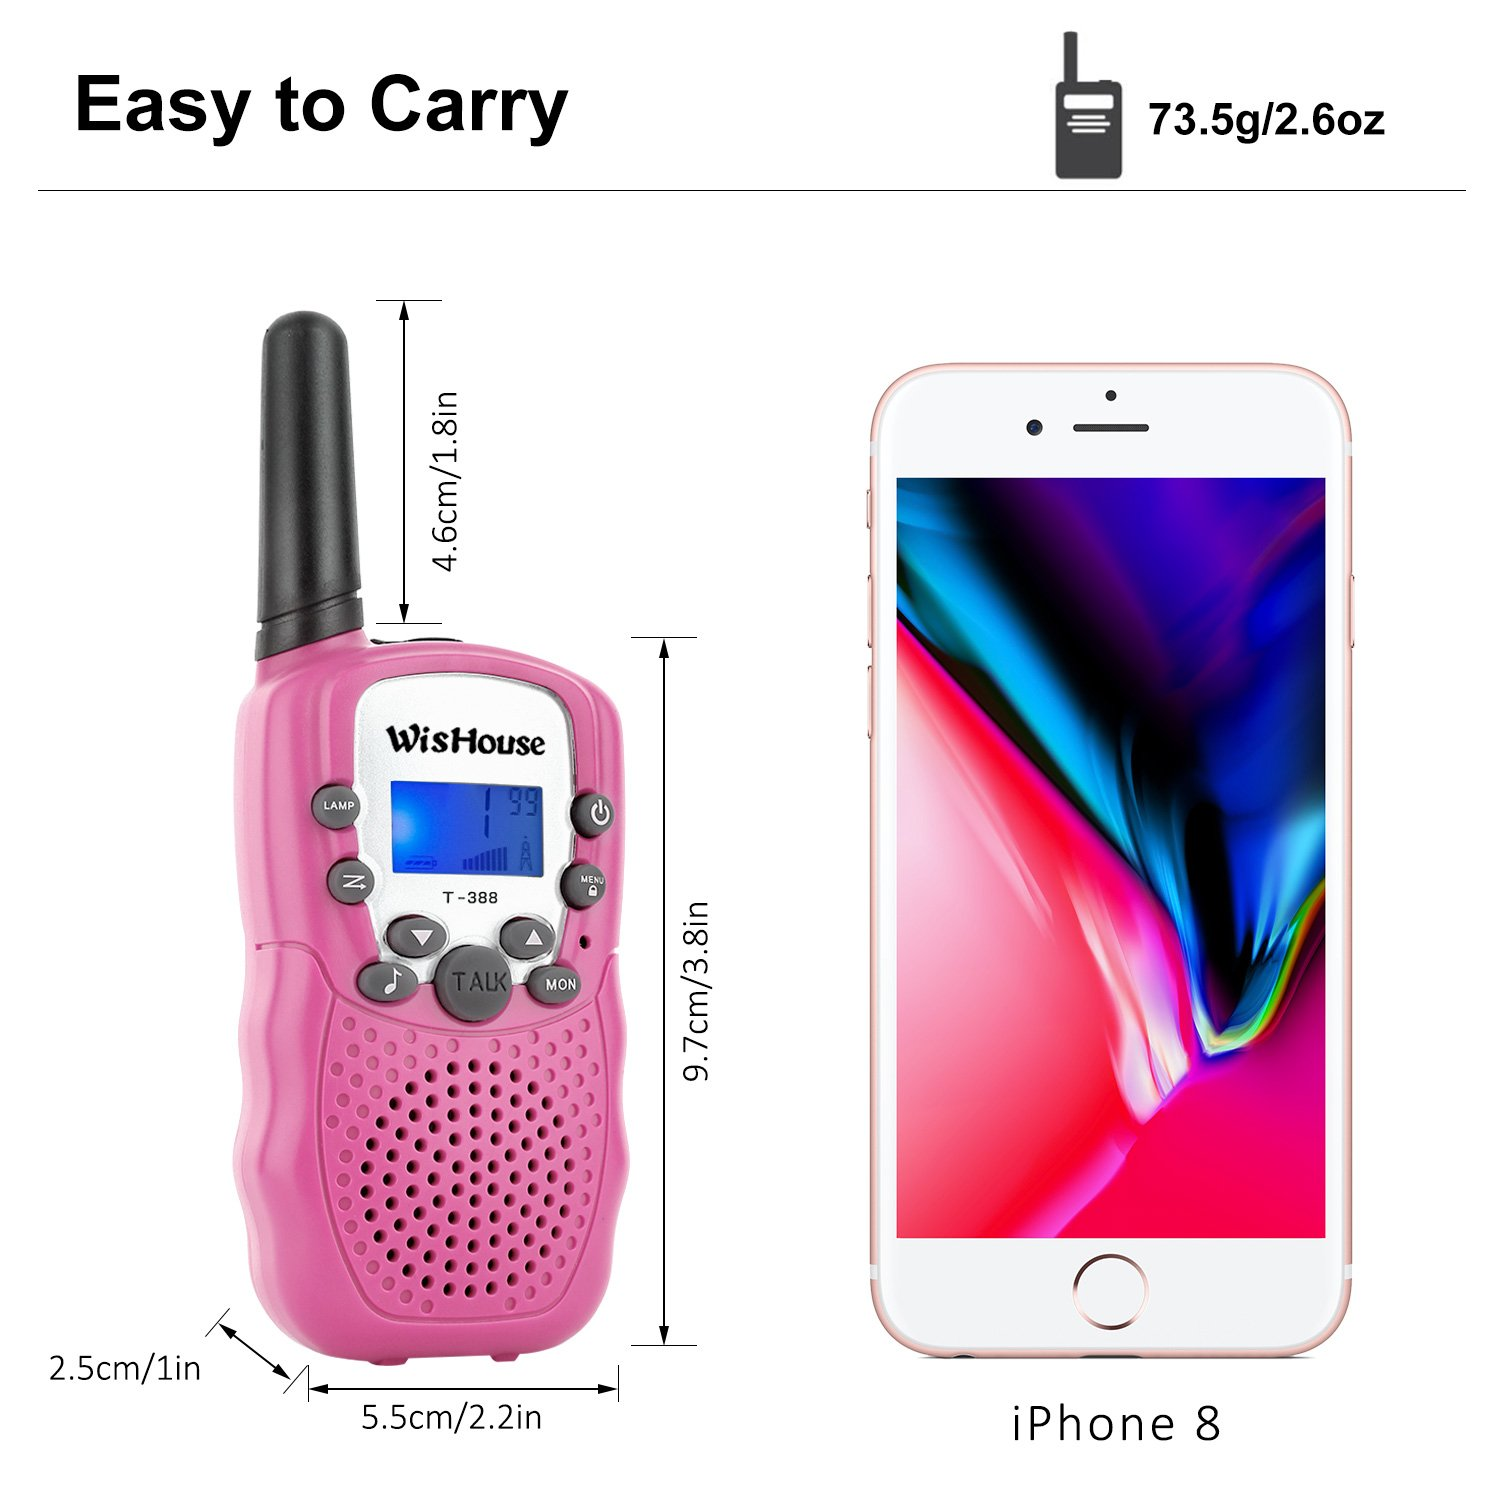 Wishouse Walkie Talkie Kids Toy Set,Best Gifts Easy use Two Way Radios for Girls, 22 Chanels 3 Miles Long Range Cool Vox walky Talky for Camping Hiking Fishing Outdoors(T388 Pink, 2 Pairs) by Wishouse (Image #5)